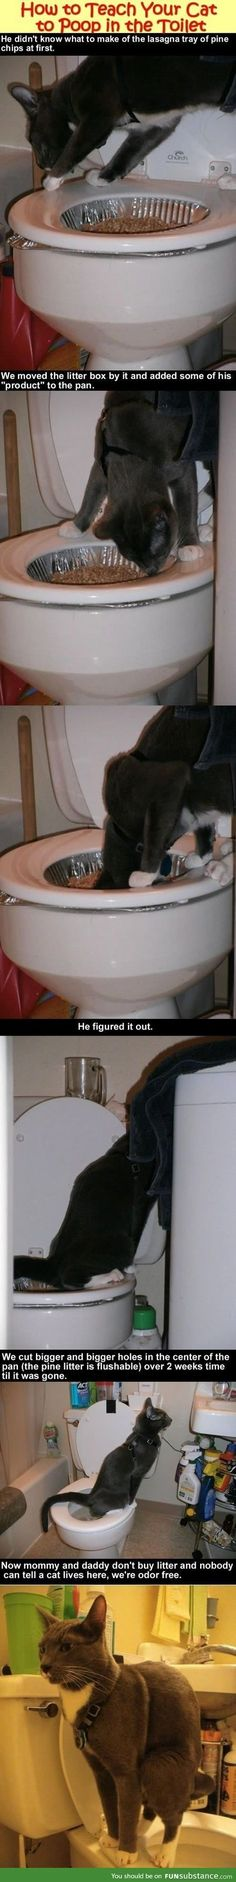 Teach The Cat to Shit in the Toilet